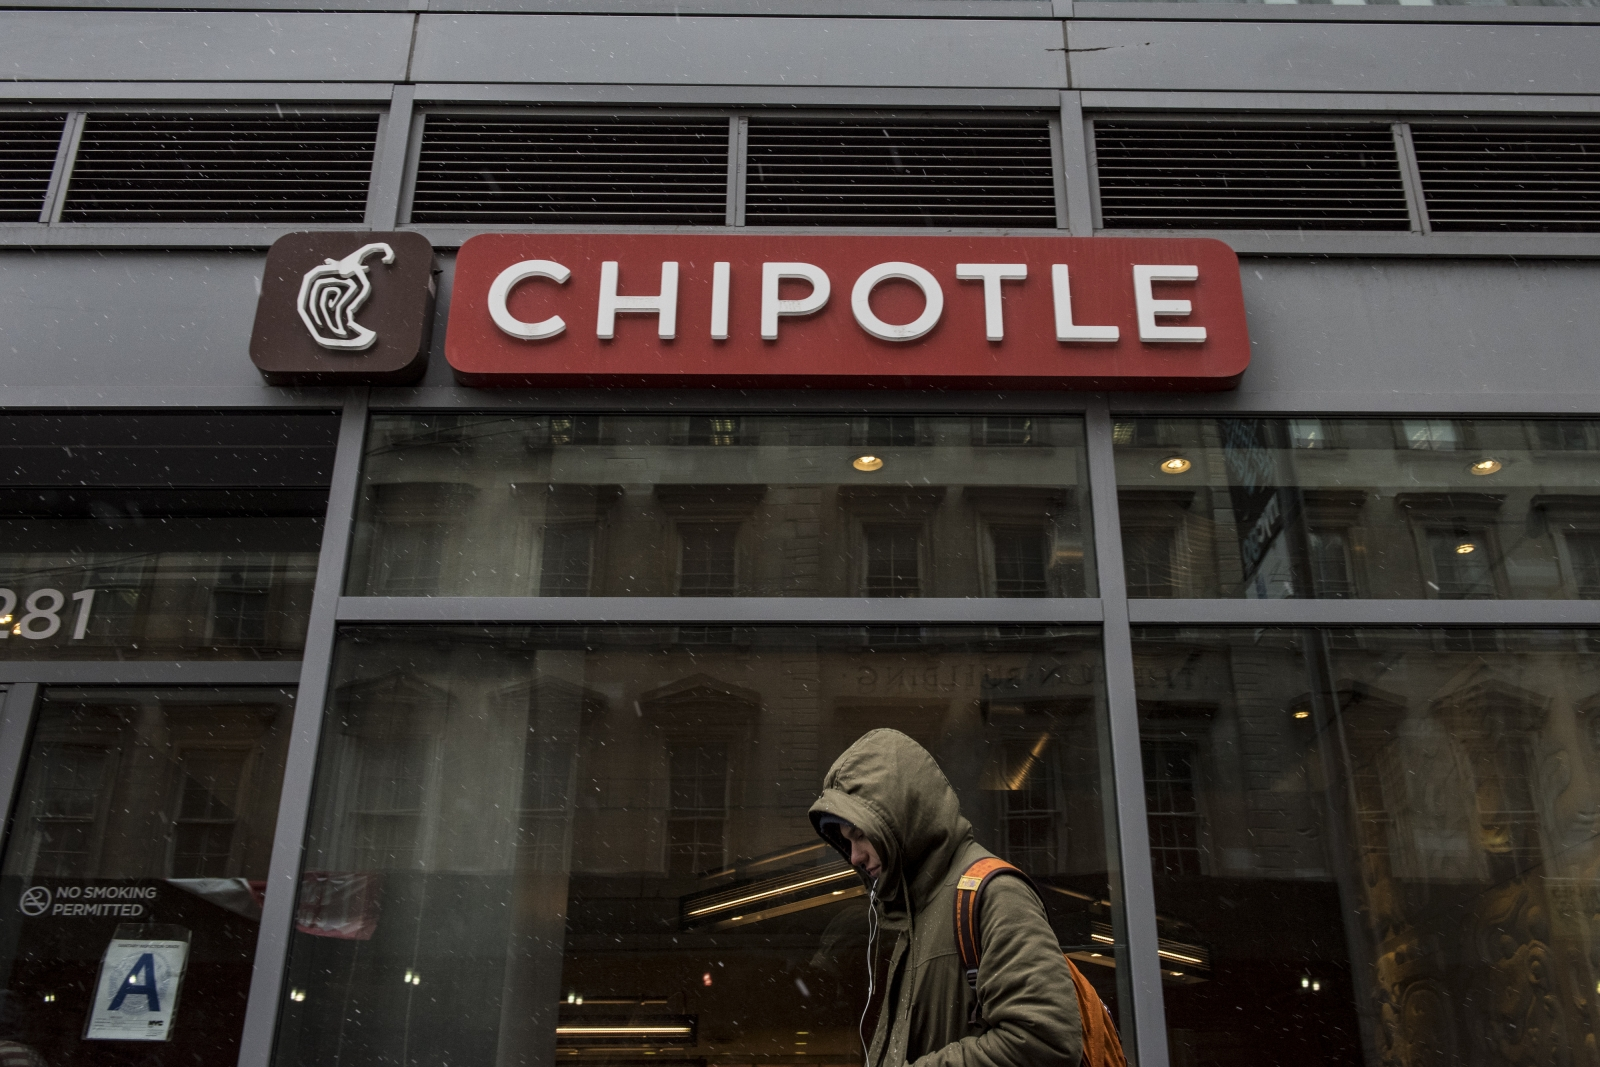 chipotle-under-scrutiny-for-food-safety